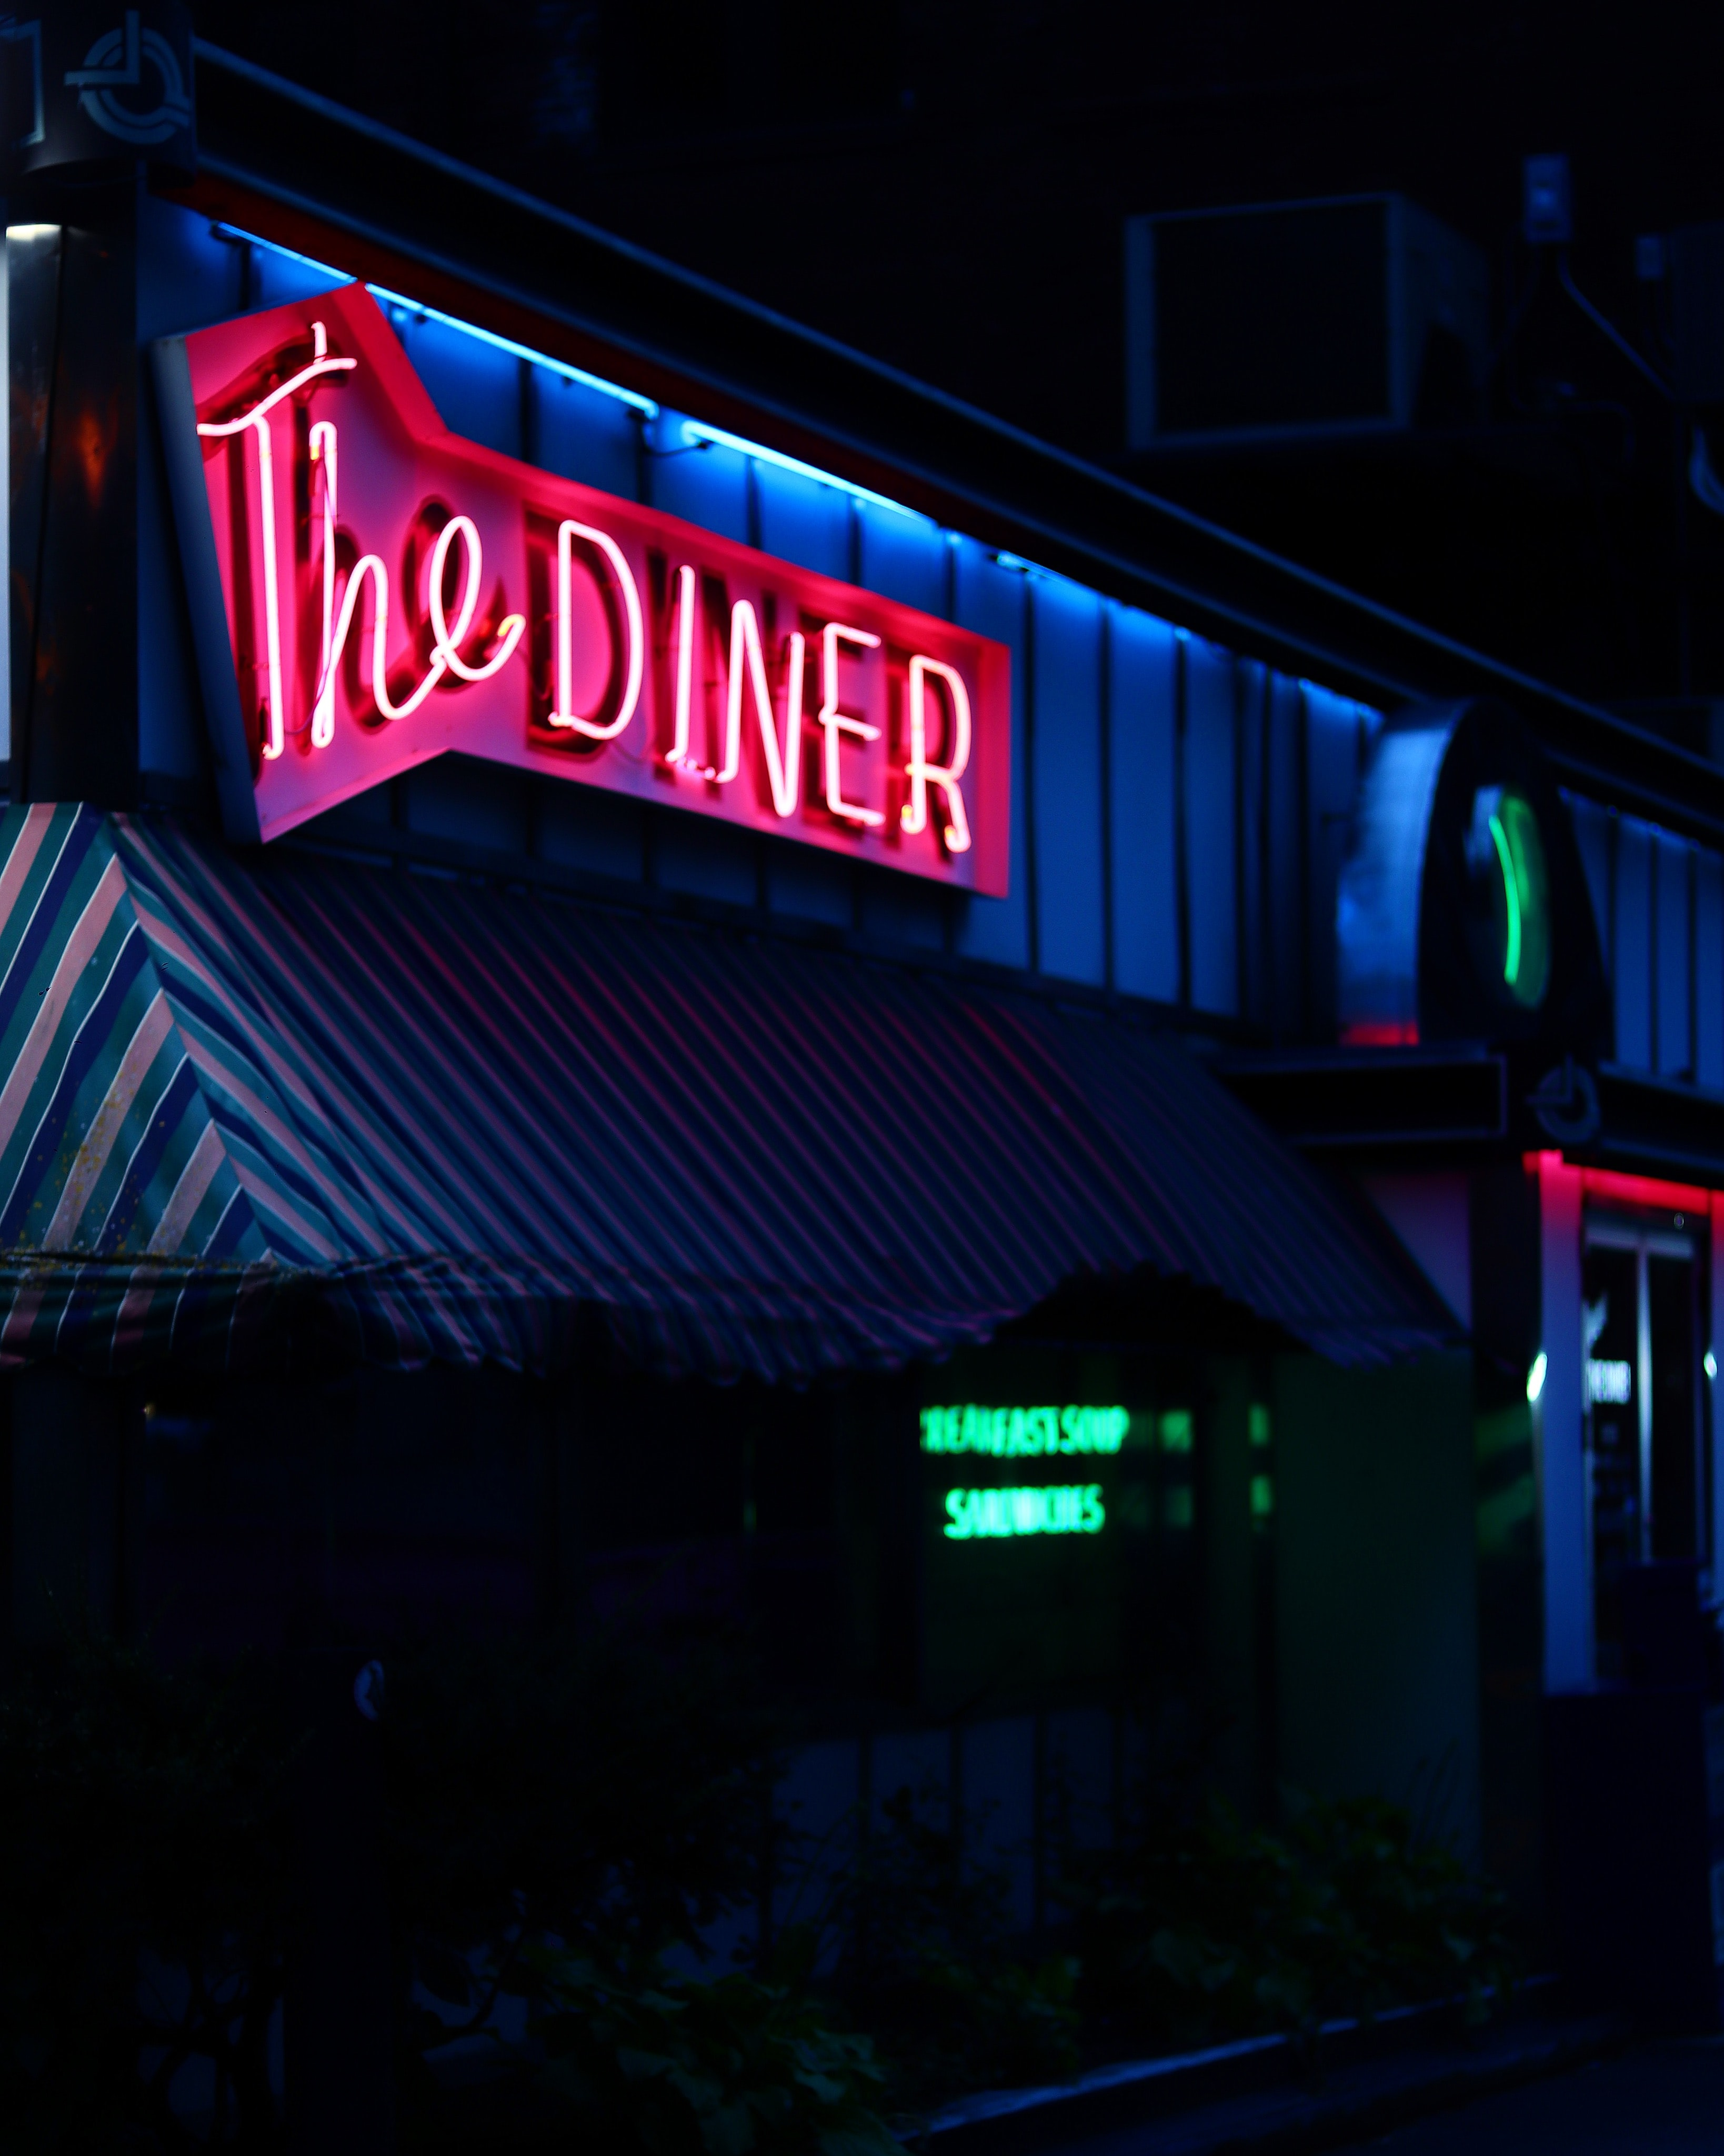 The Diner neon light signage